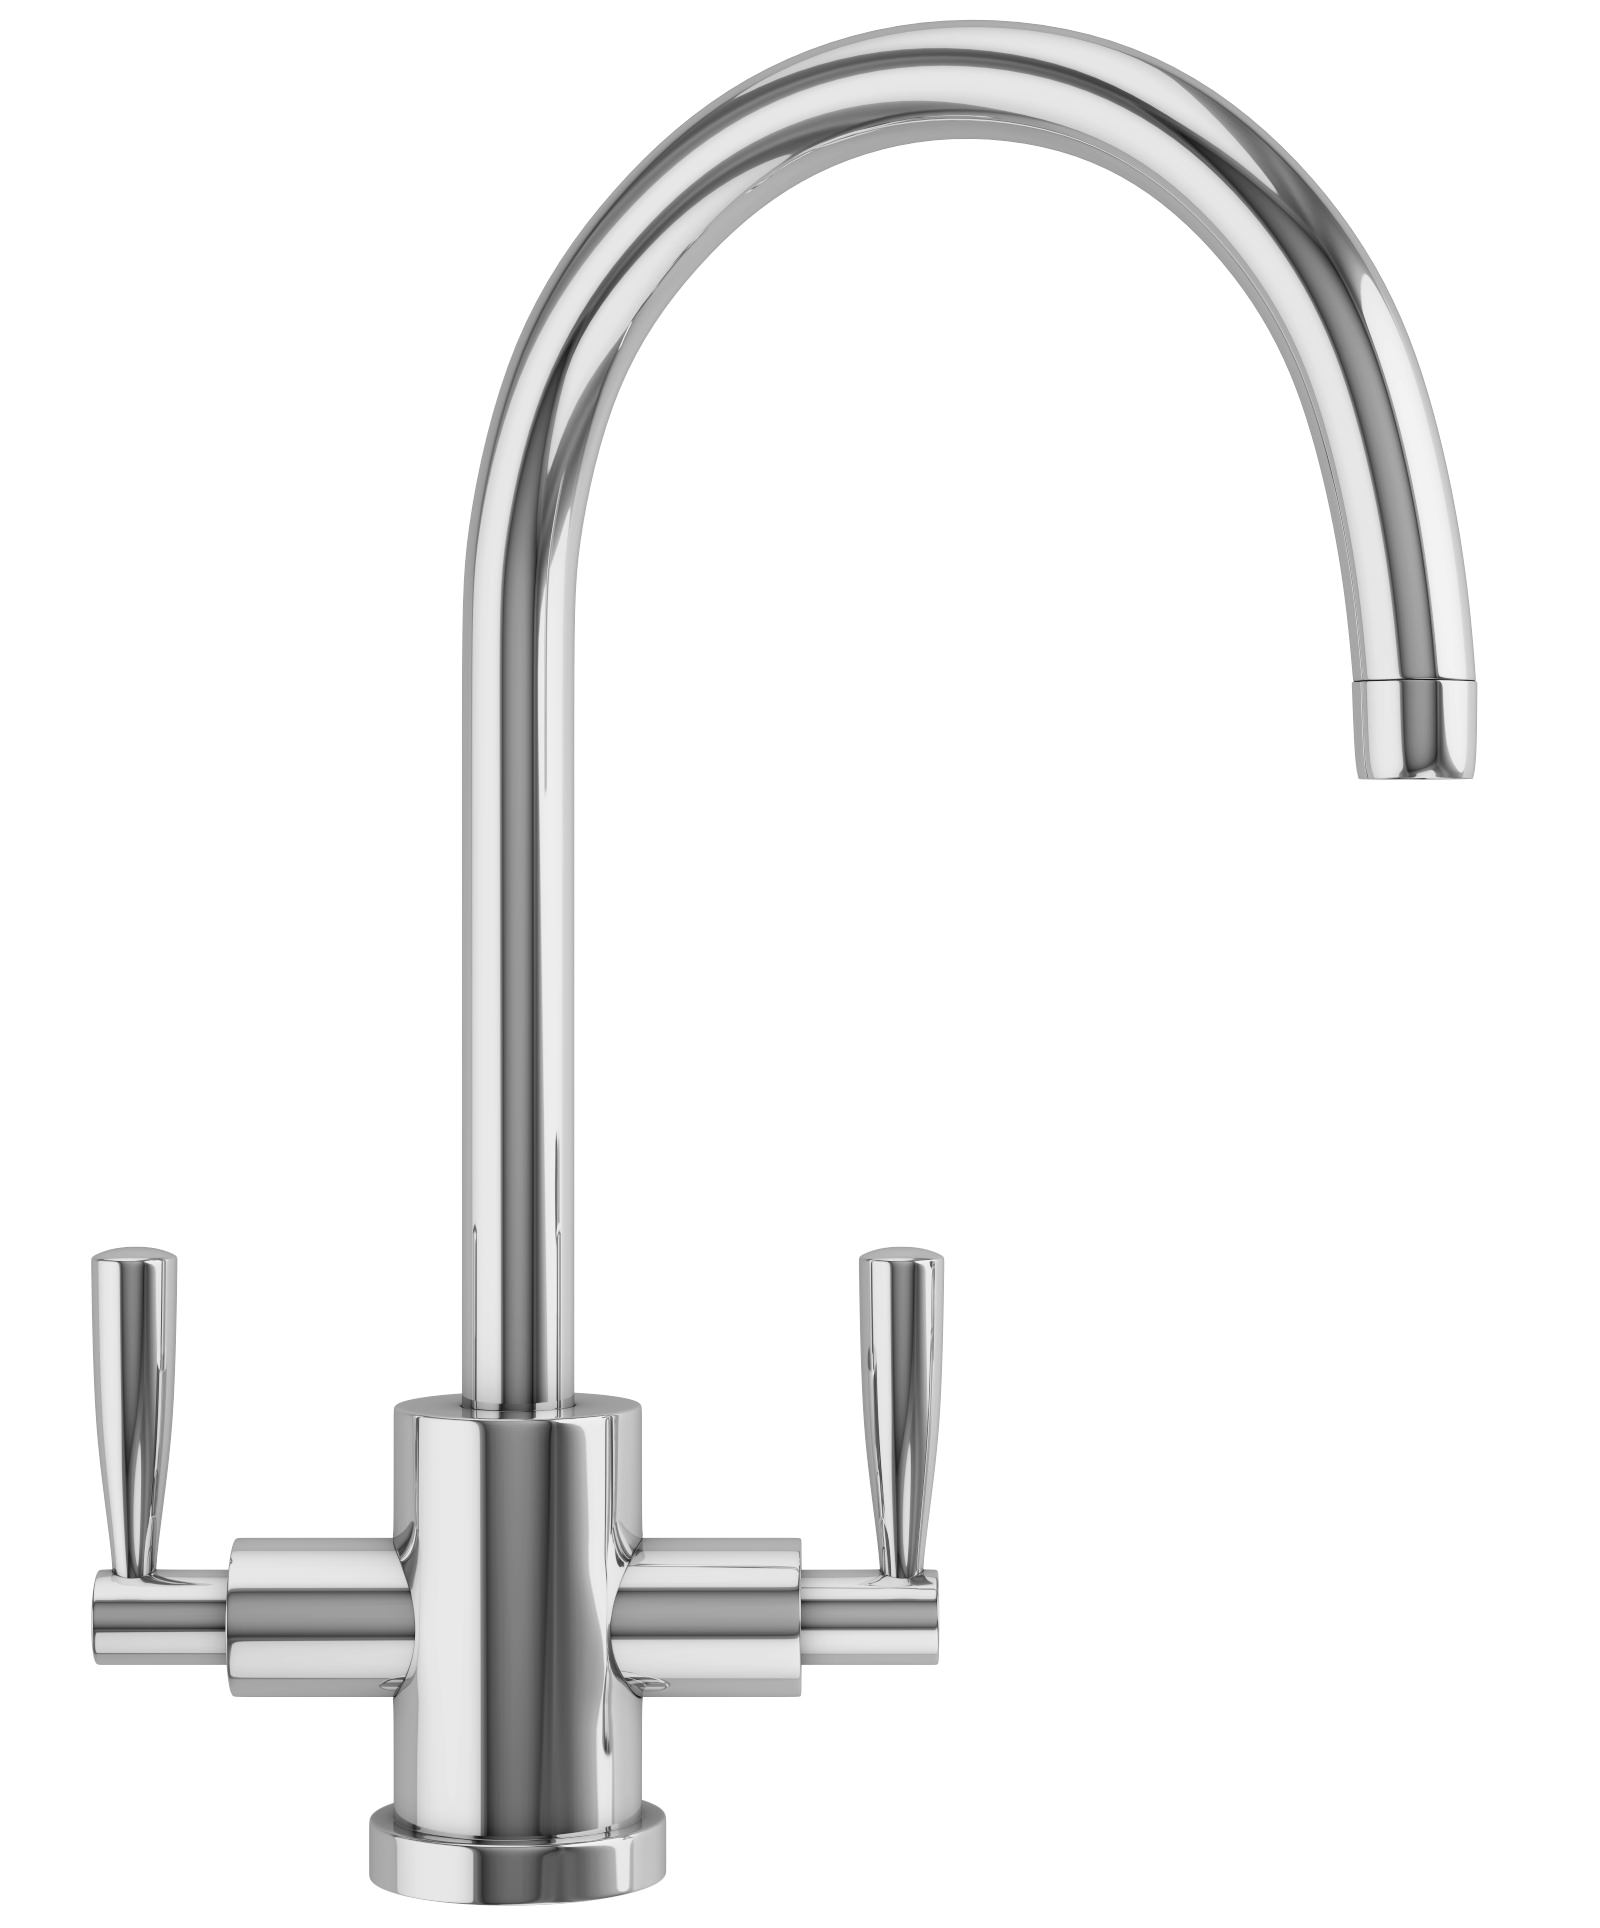 franke olympus kitchen sink mixer tap chrome - Kitchen Sink Mixer Taps